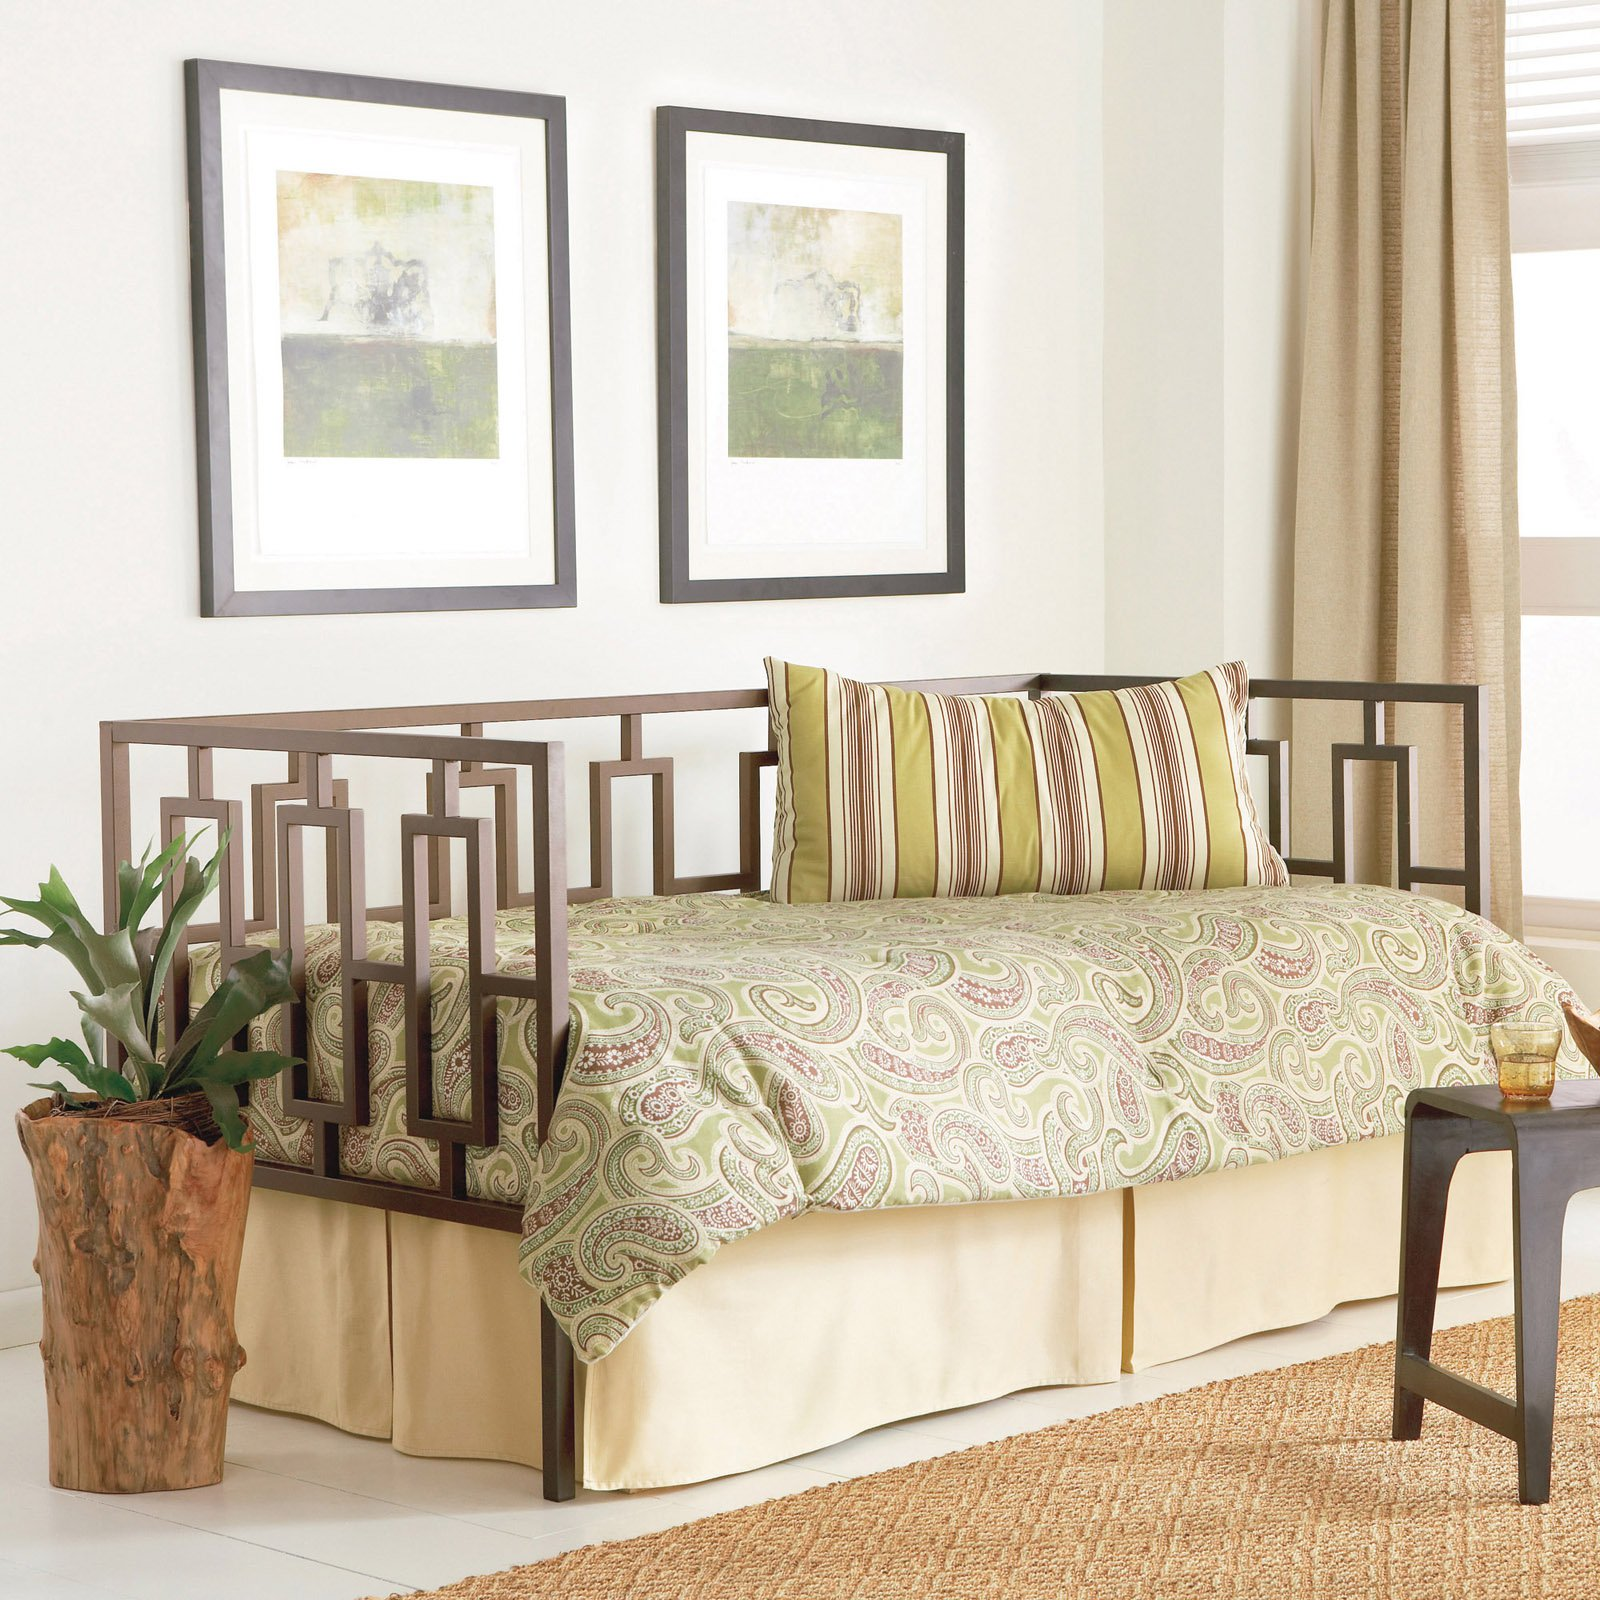 Miami Complete Metal Day Bed with Link Spring and Trundle Bed Pop-Up Frame, Coffee Finish, Twin by Fashion Bed Group